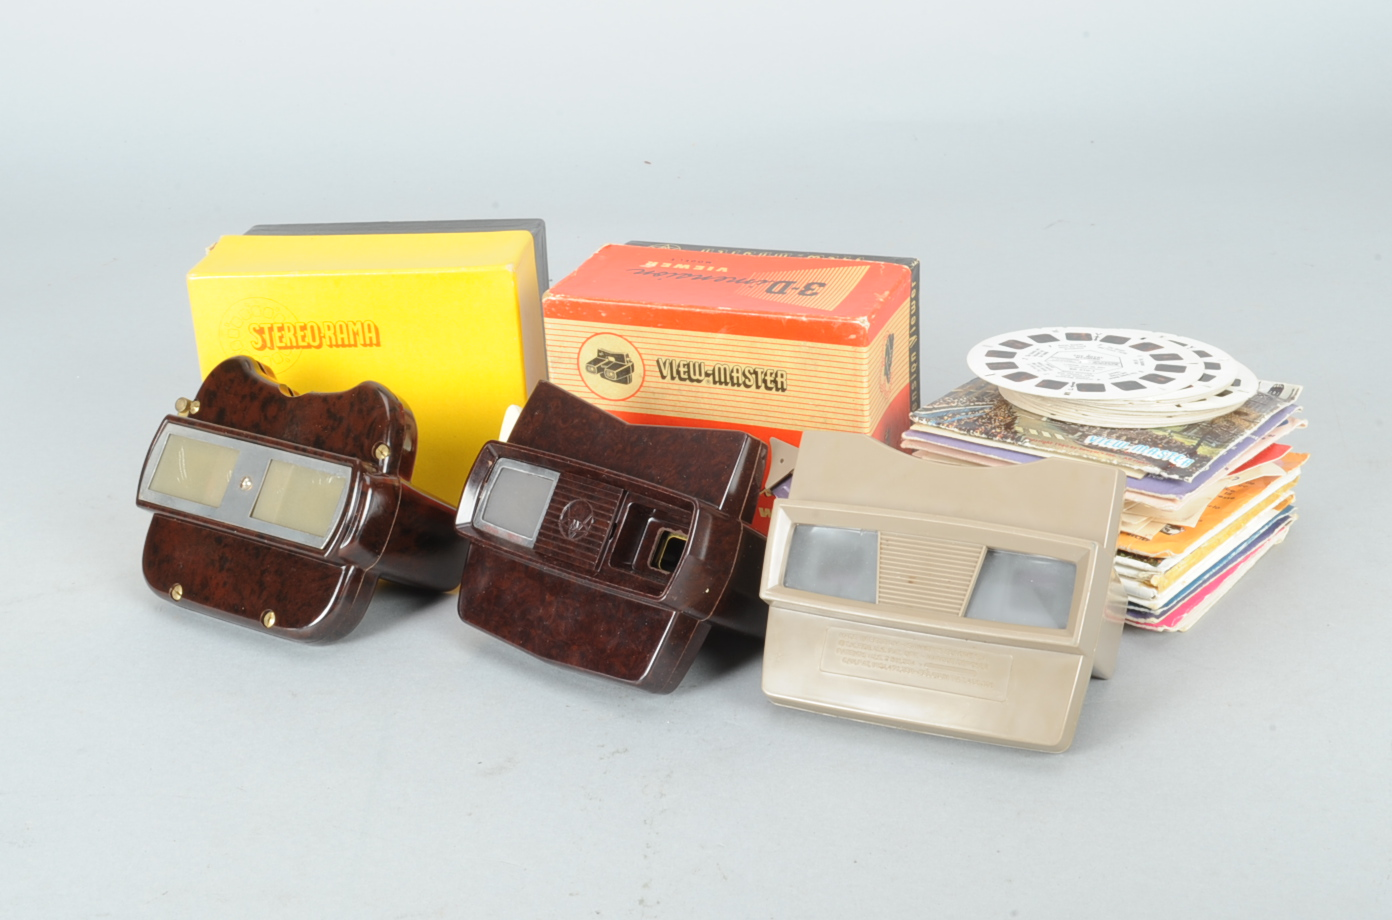 Lot 109 - View-Master 3-D Viewers and Reels, two Sawyer's View-Master stereoscopic viewers, one boxed, a